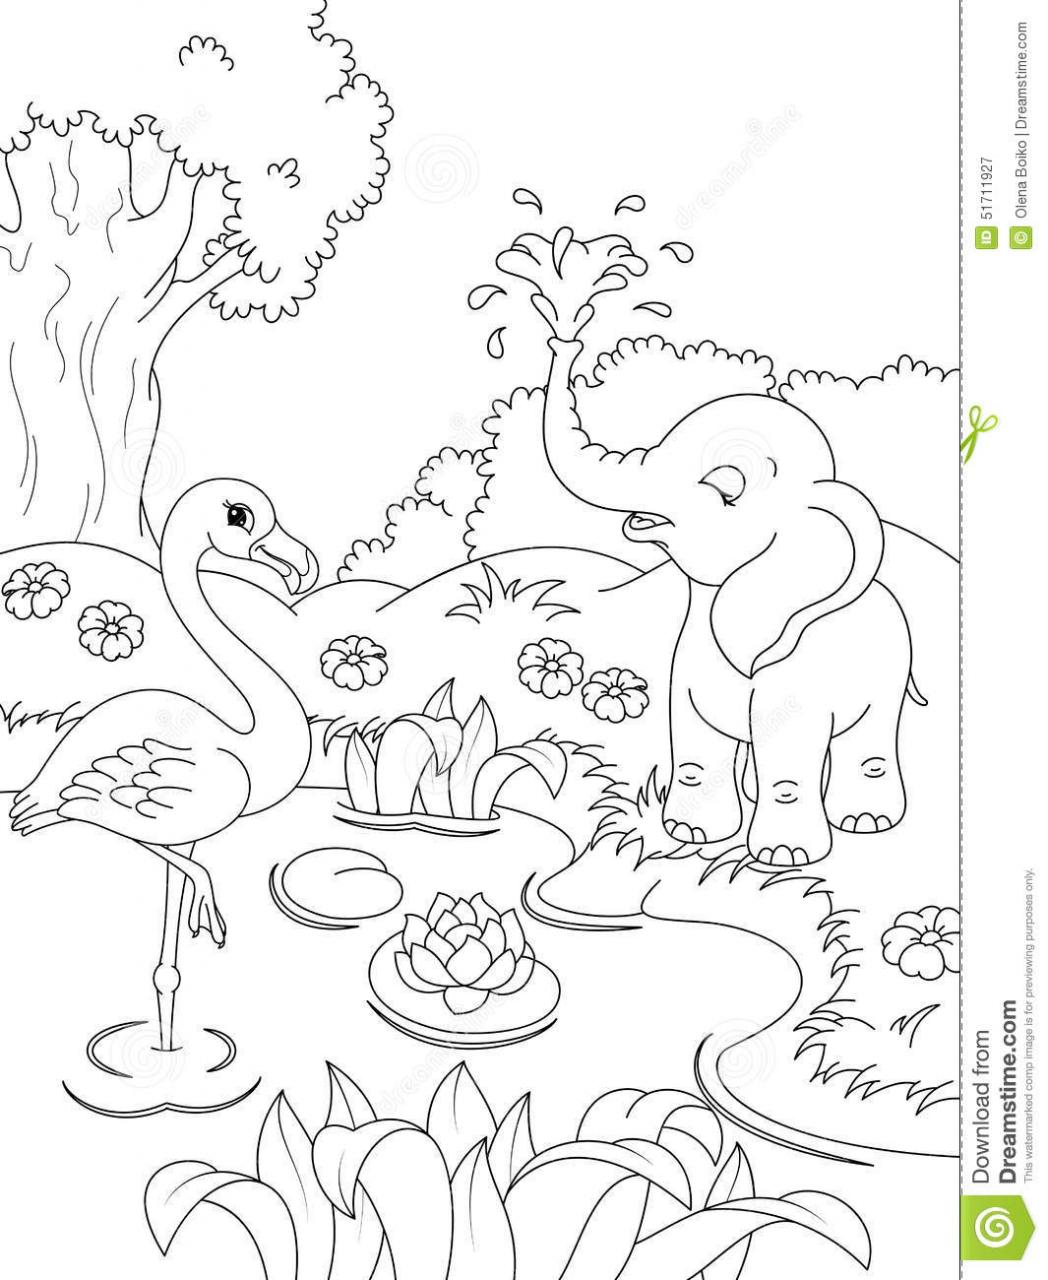 coloring pages of nature and animals free download endangered animals coloring page exploring of nature and coloring animals pages